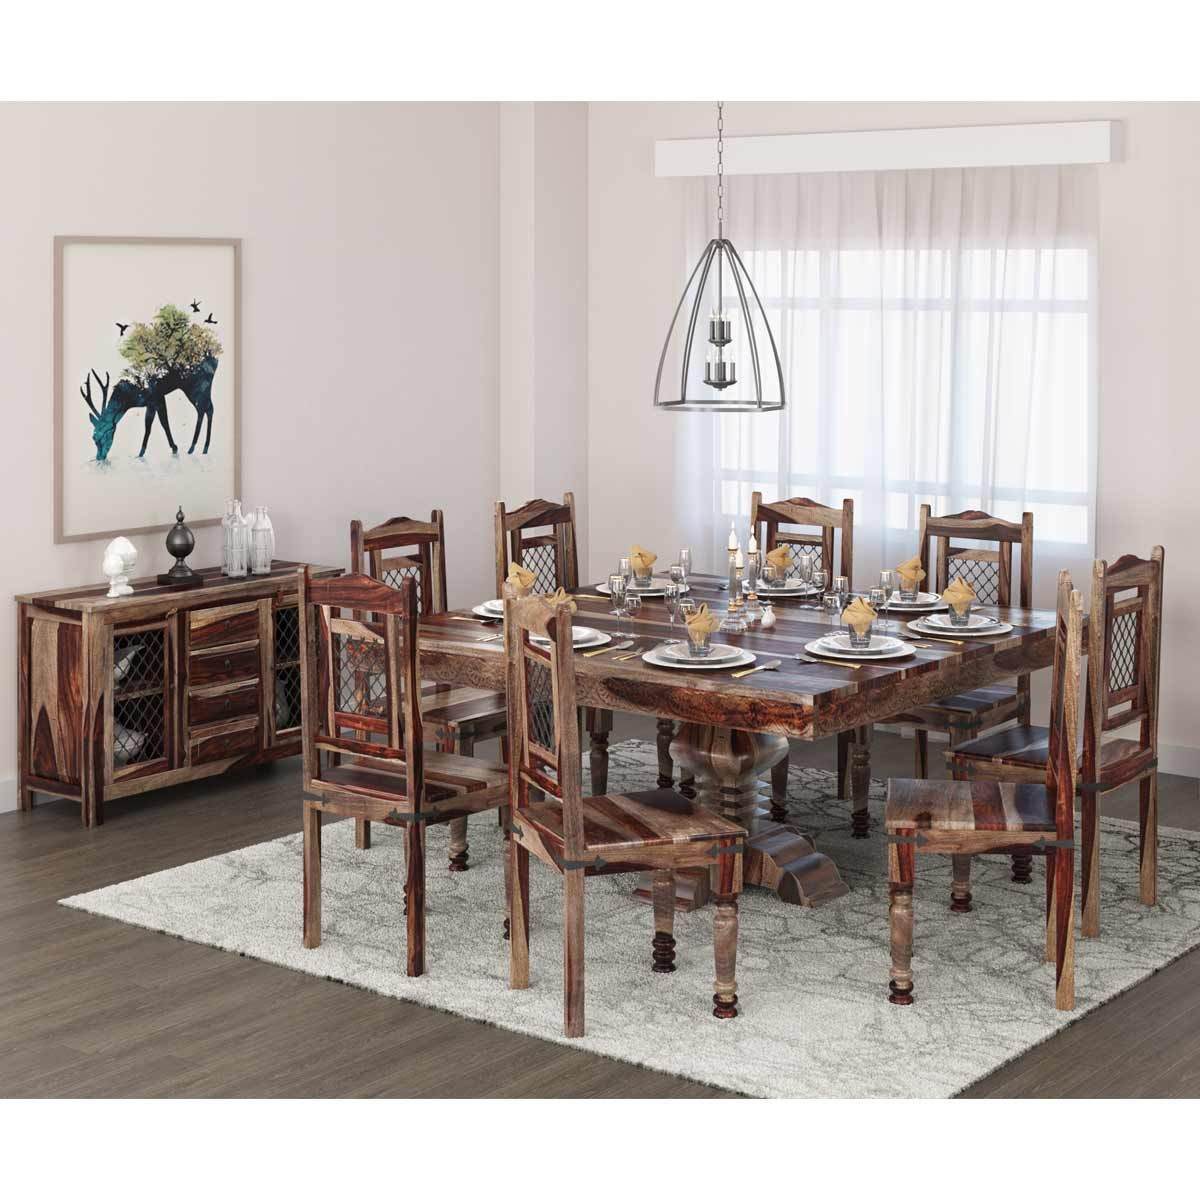 The Florida Handcrafted Rustic Solid Wood 10 Piece Dining Table Set Features A Graceful Sq Solid Wood Dining Room Set Square Dining Tables Dining Table Setting